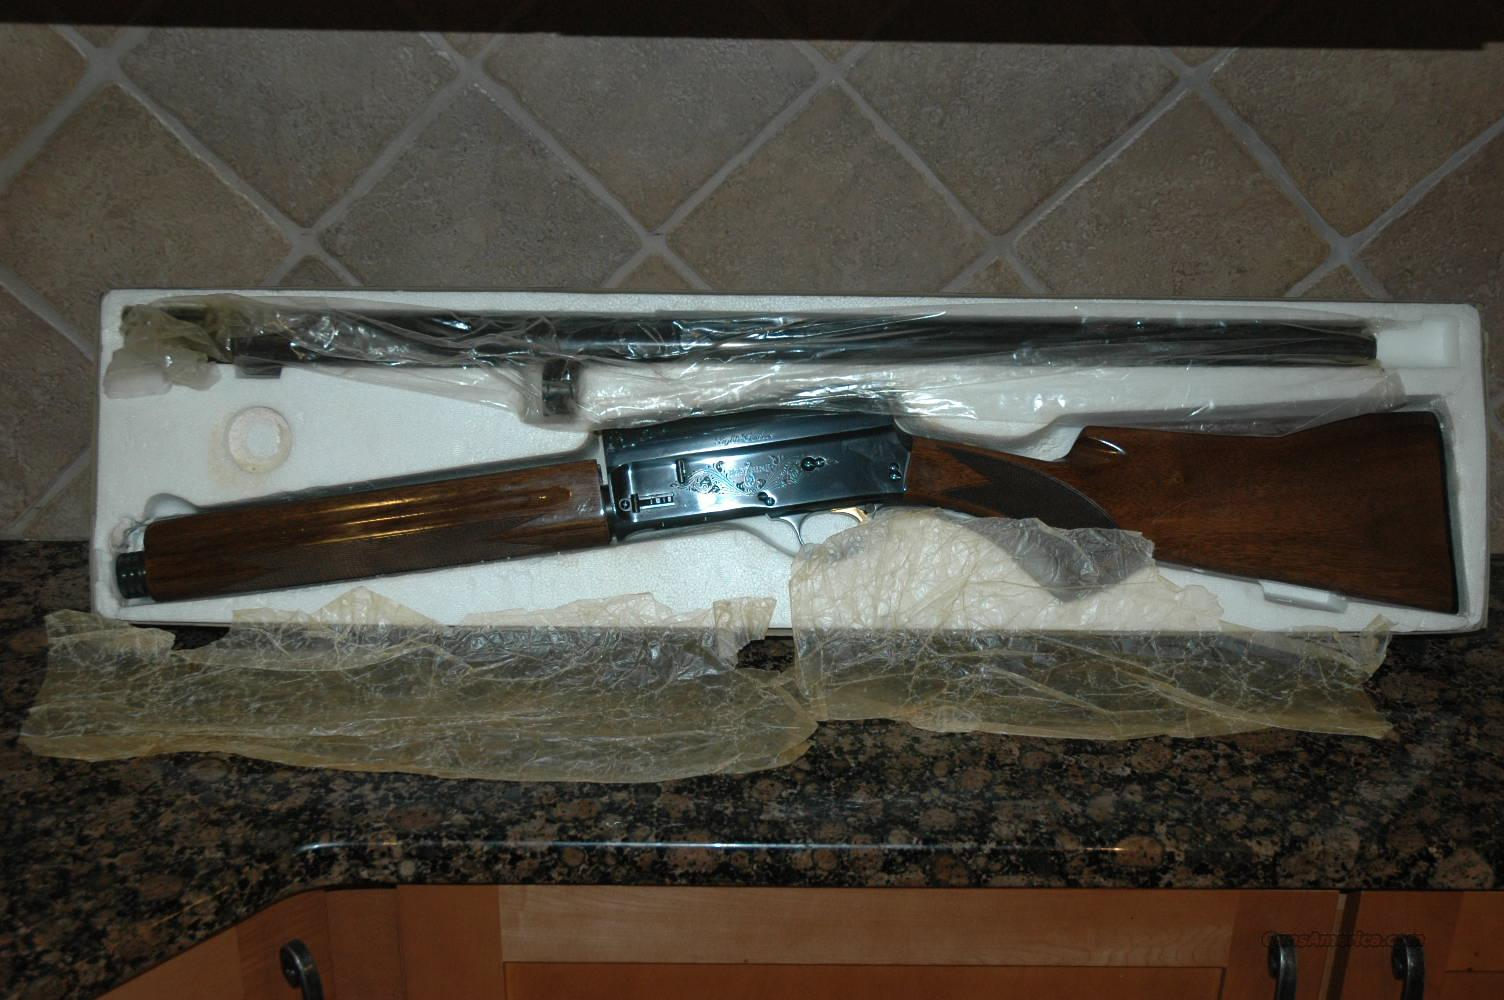 NIB A5 Unfired purchased in 1975  Guns > Shotguns > Browning Shotguns > Autoloaders > Hunting